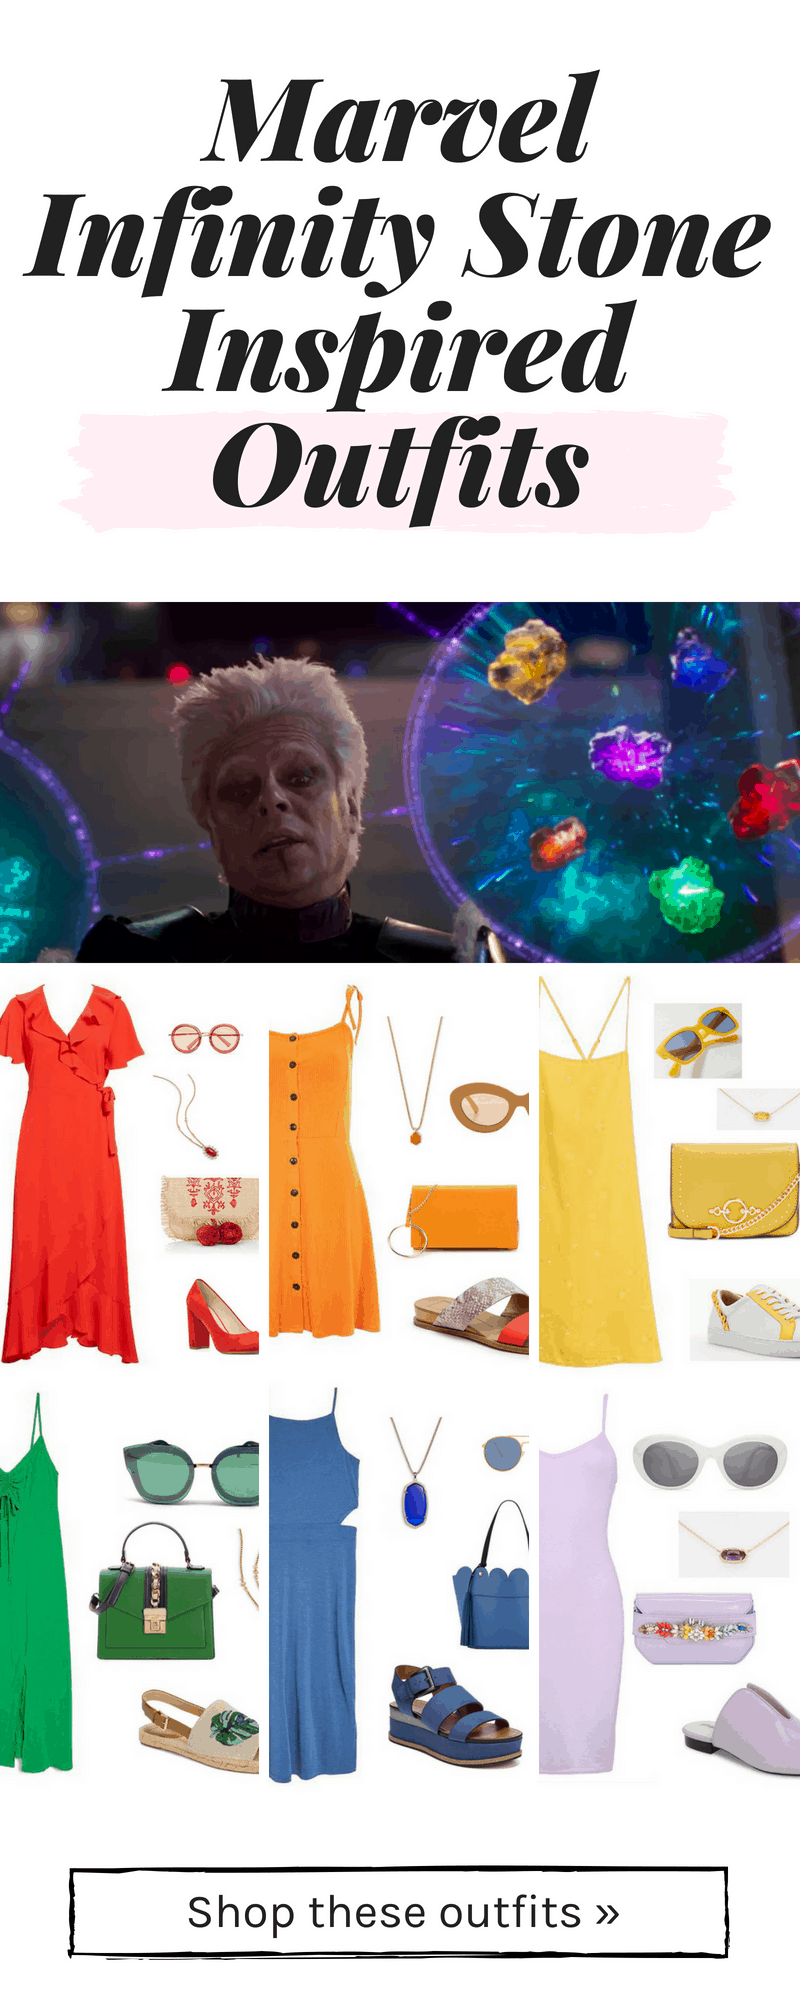 Marvel Infinity Stone inspired outfits - geek chic fashion